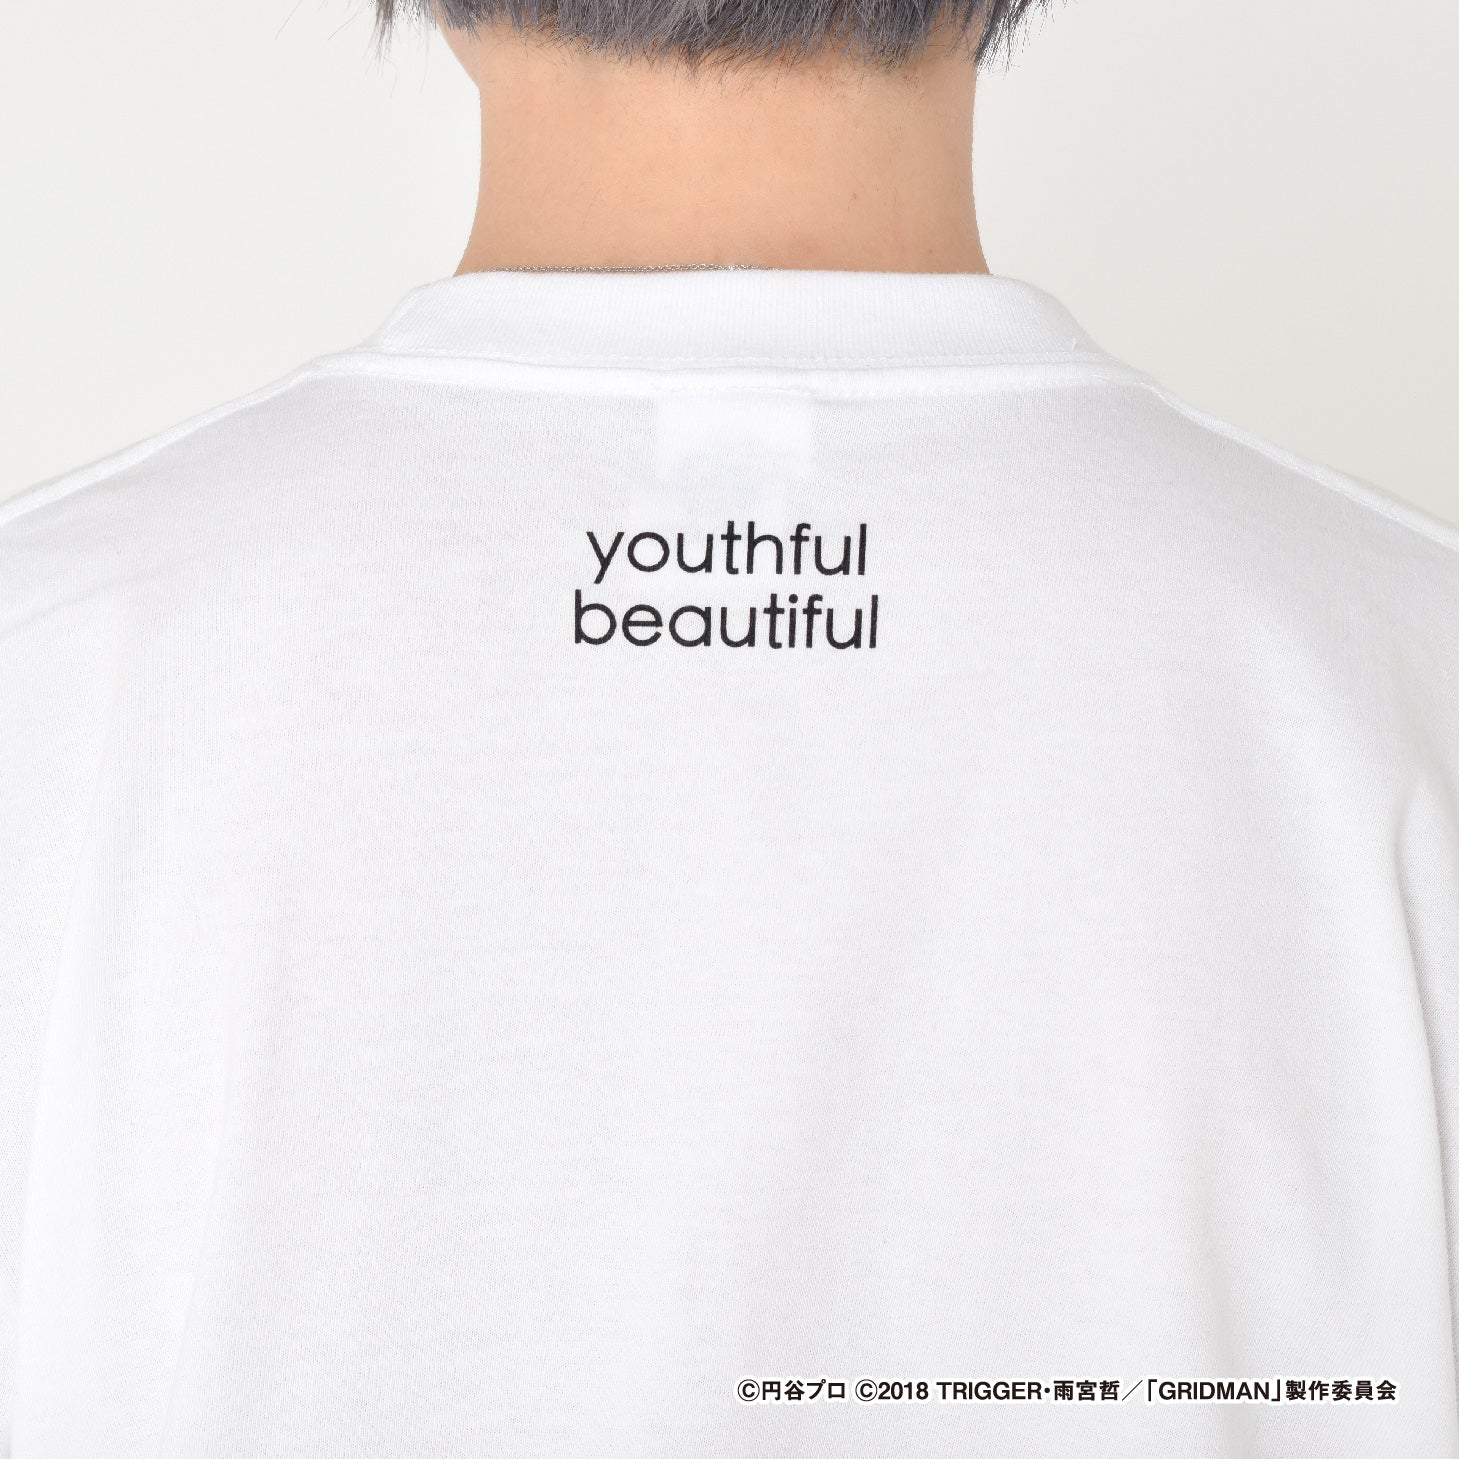 SSSS.GRIDMAN culcolle コラボアイテム Tシャツ 裏面 youthful beautiful